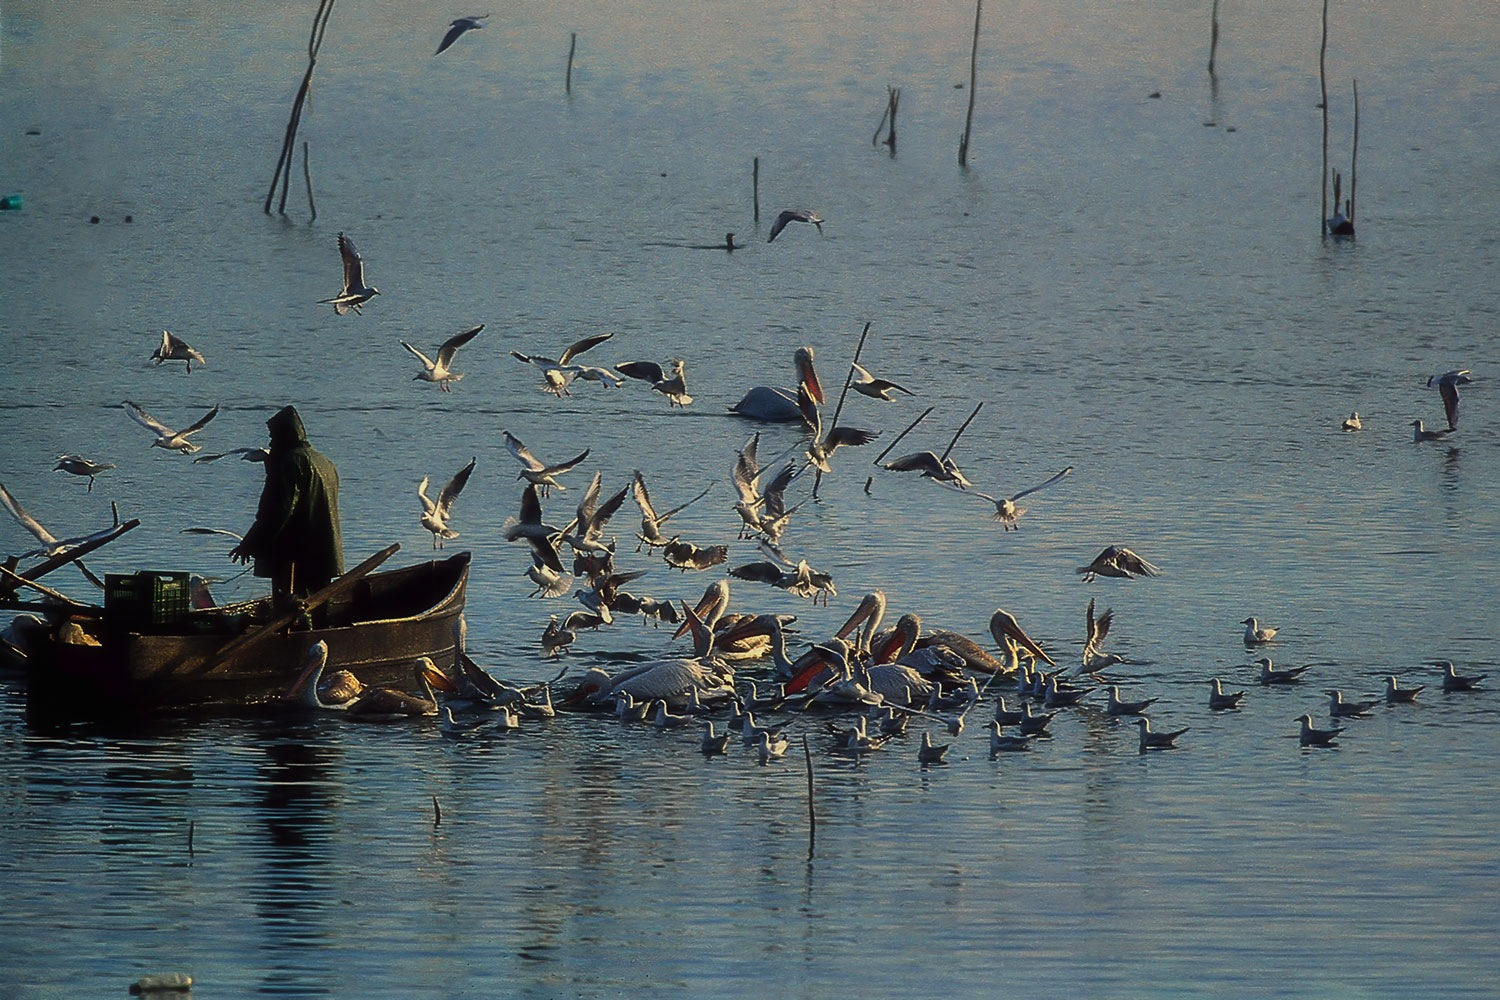 The fisherman and the pelicans by Sotiris Siomis